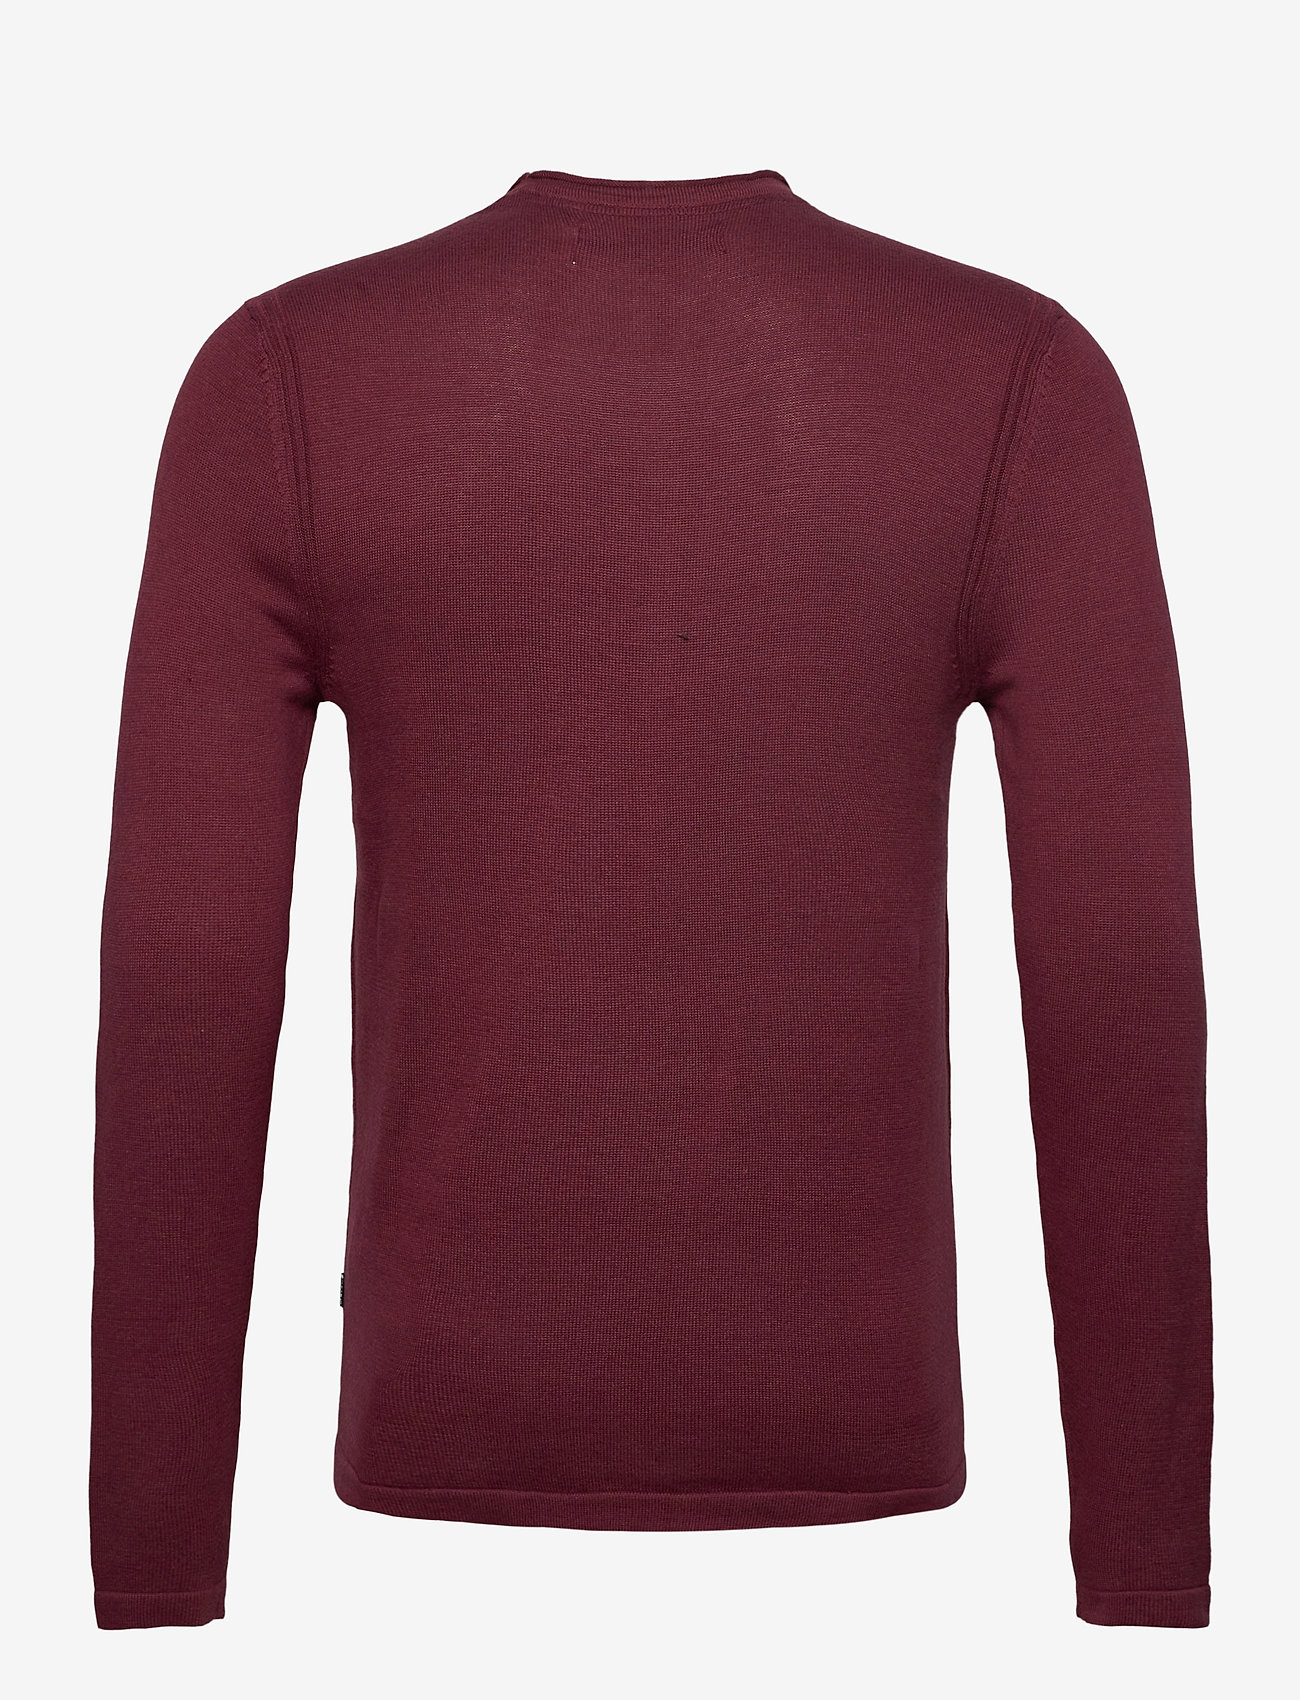 Blend - Pullover - basic knitwear - tawny port - 1